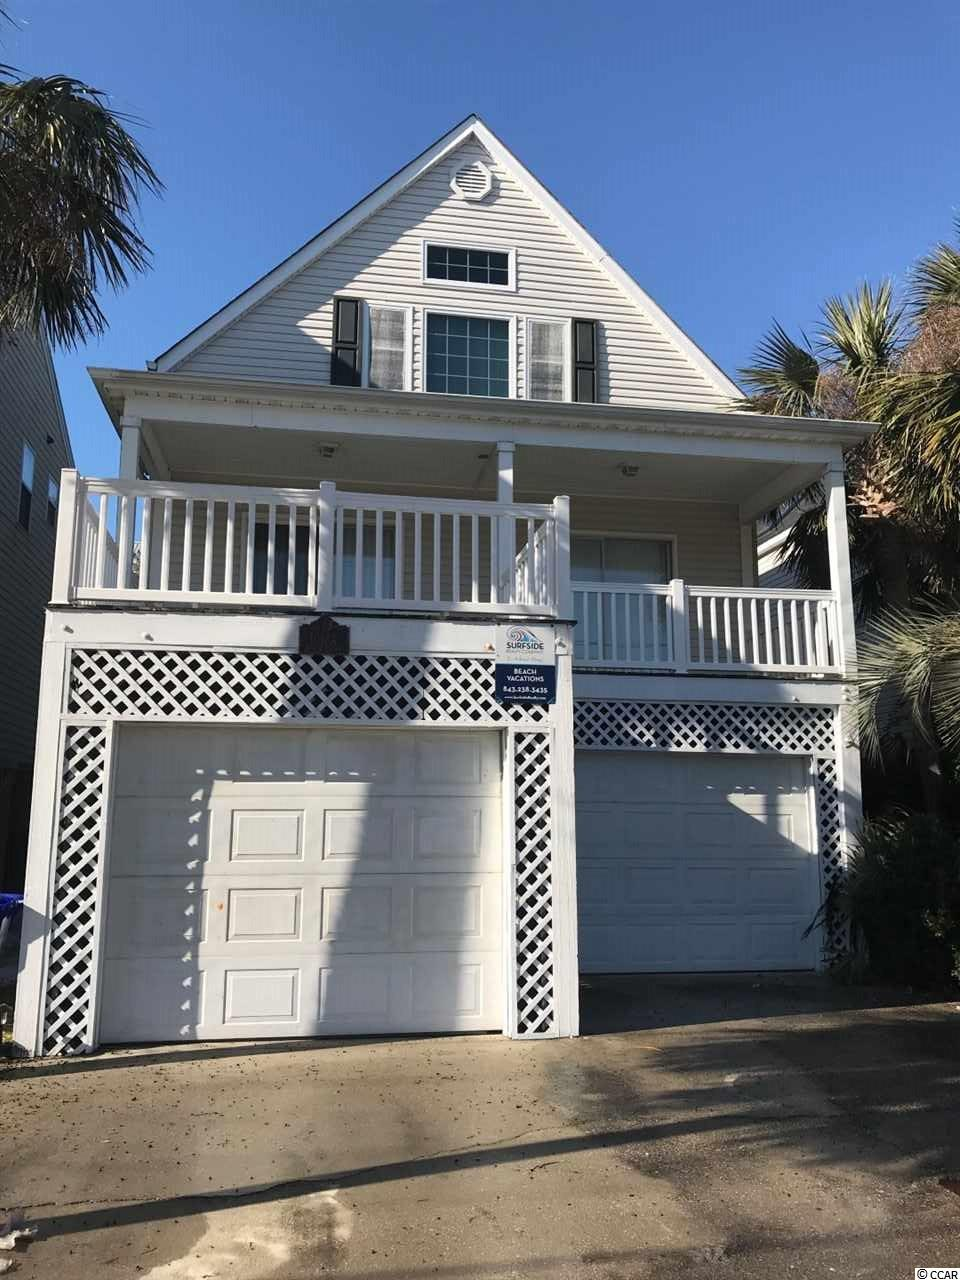 Single Family Home for Sale at 1014 S Ocean Blvd 1014 S Ocean Blvd Surfside Beach, South Carolina 29575 United States